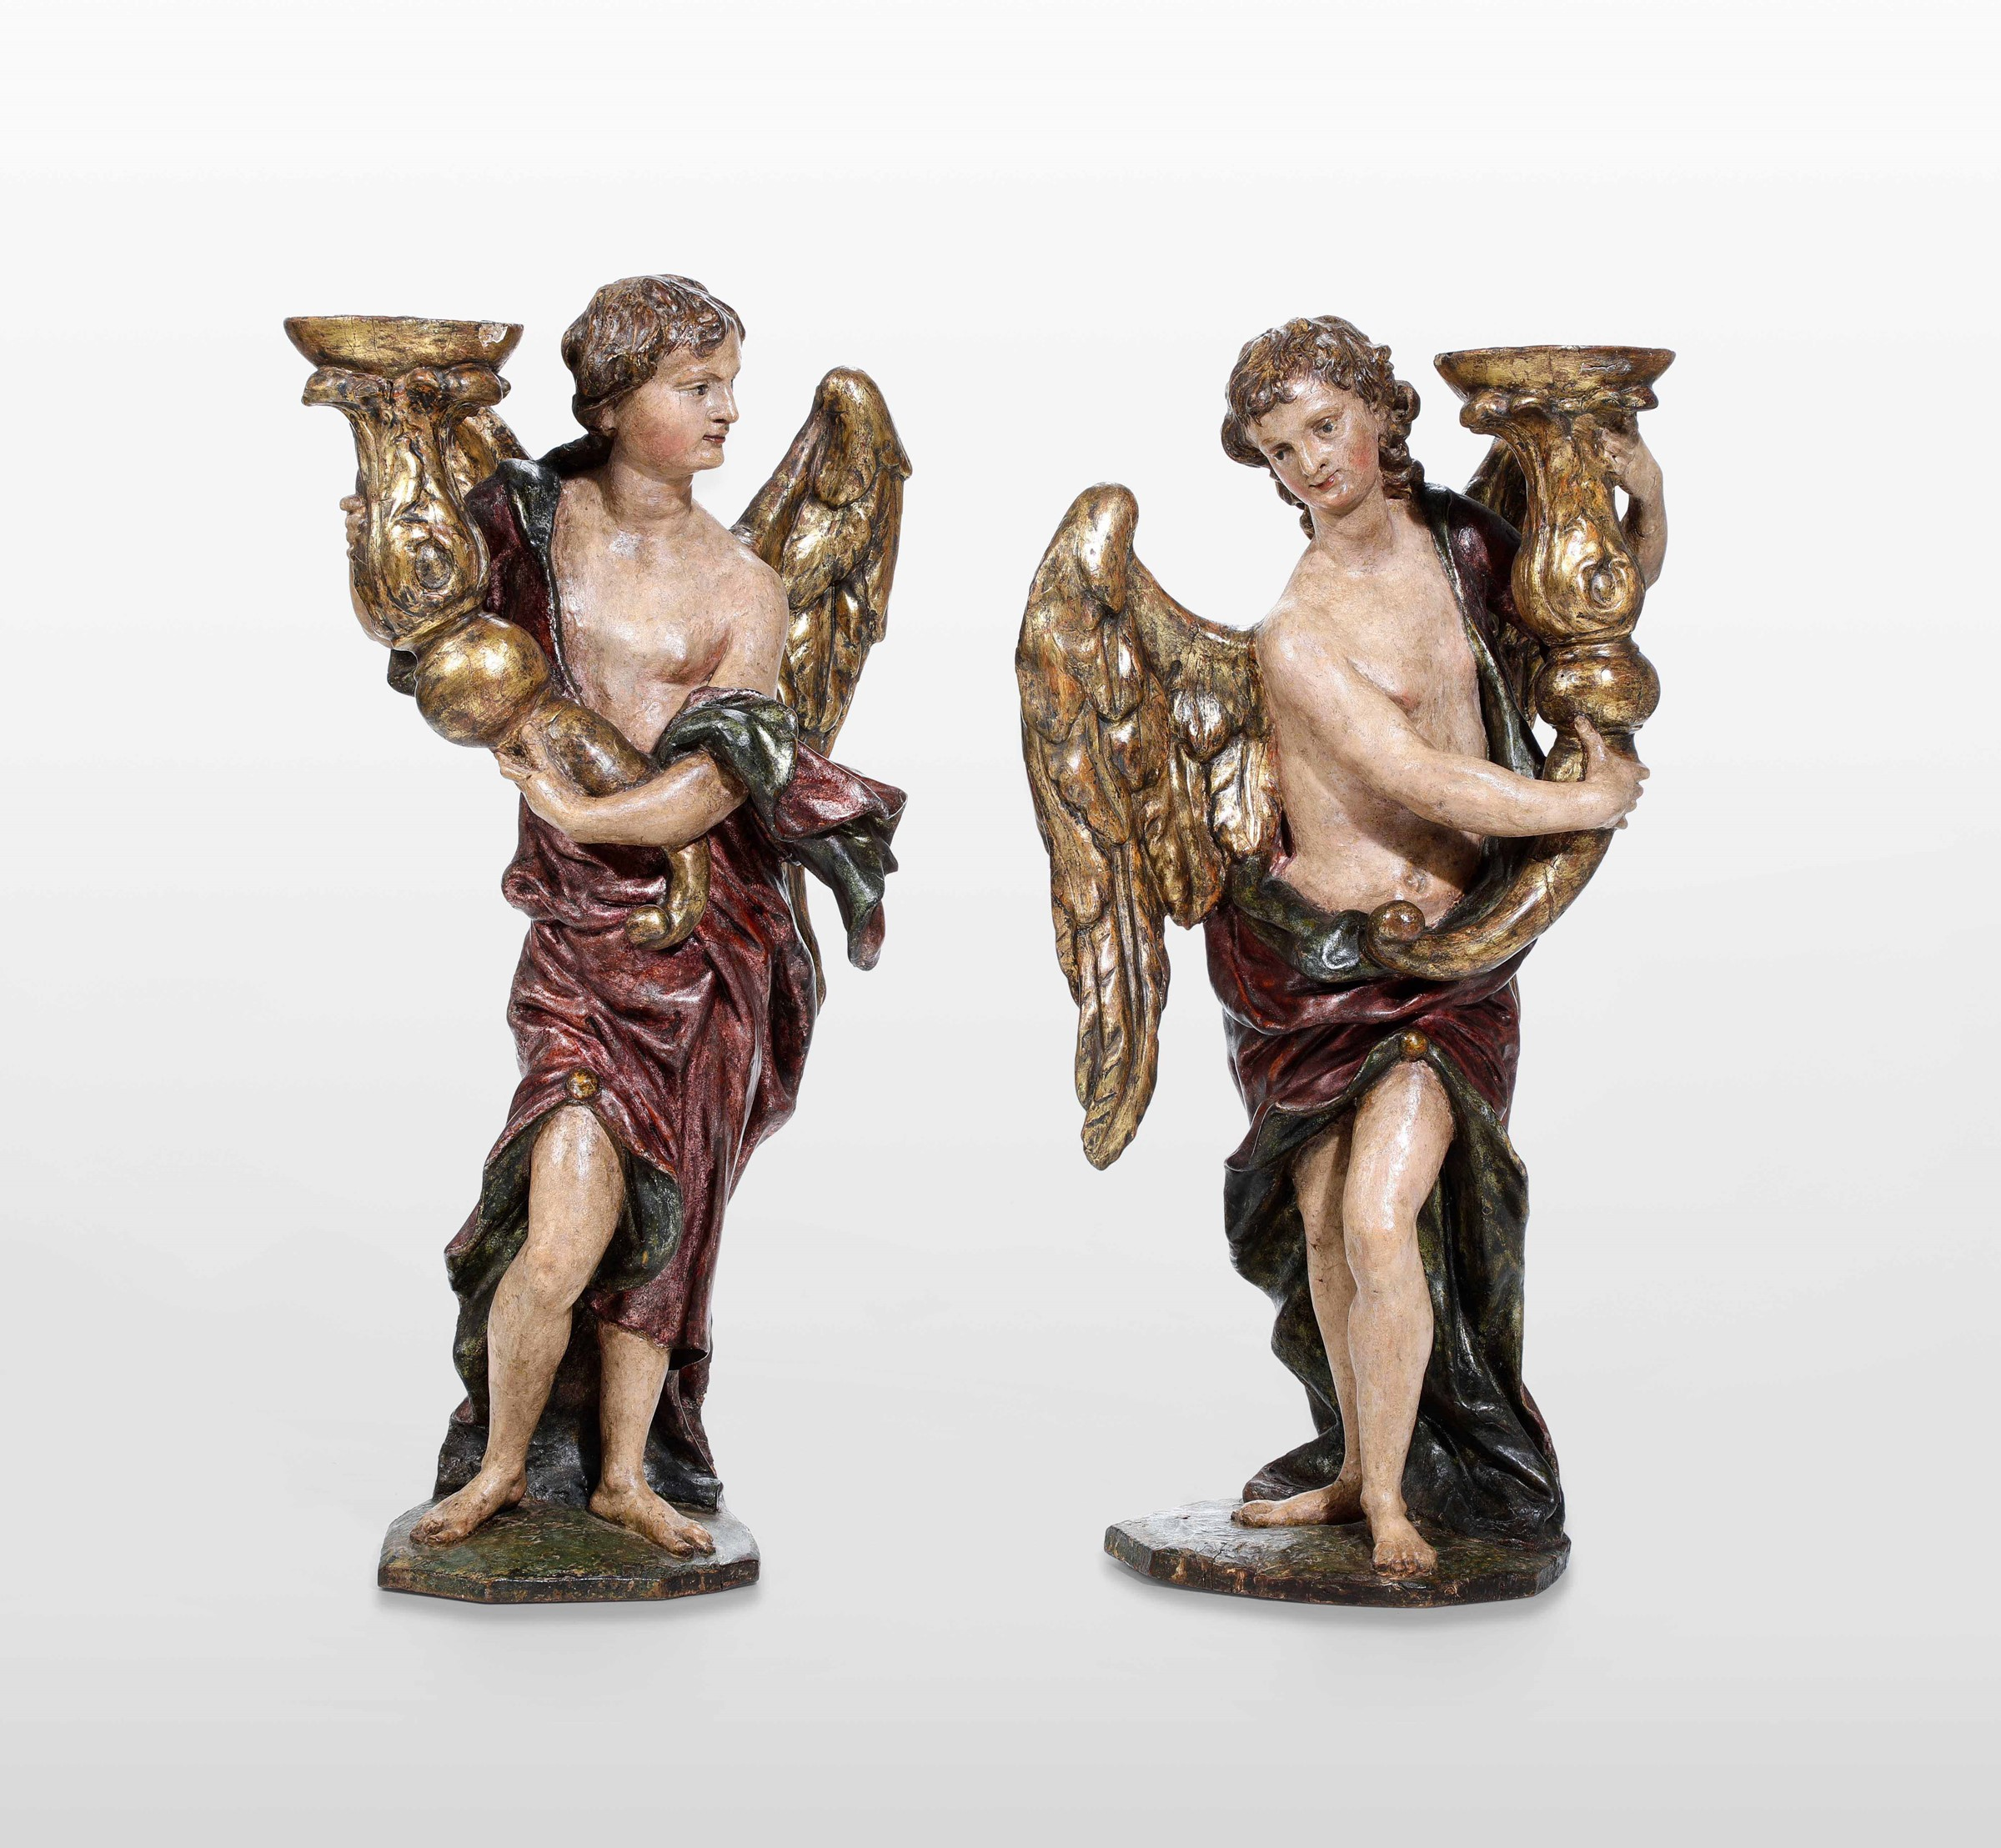 Two wooden candle-holding angels, Veneto, 1600s - altezza cm 51 circa -